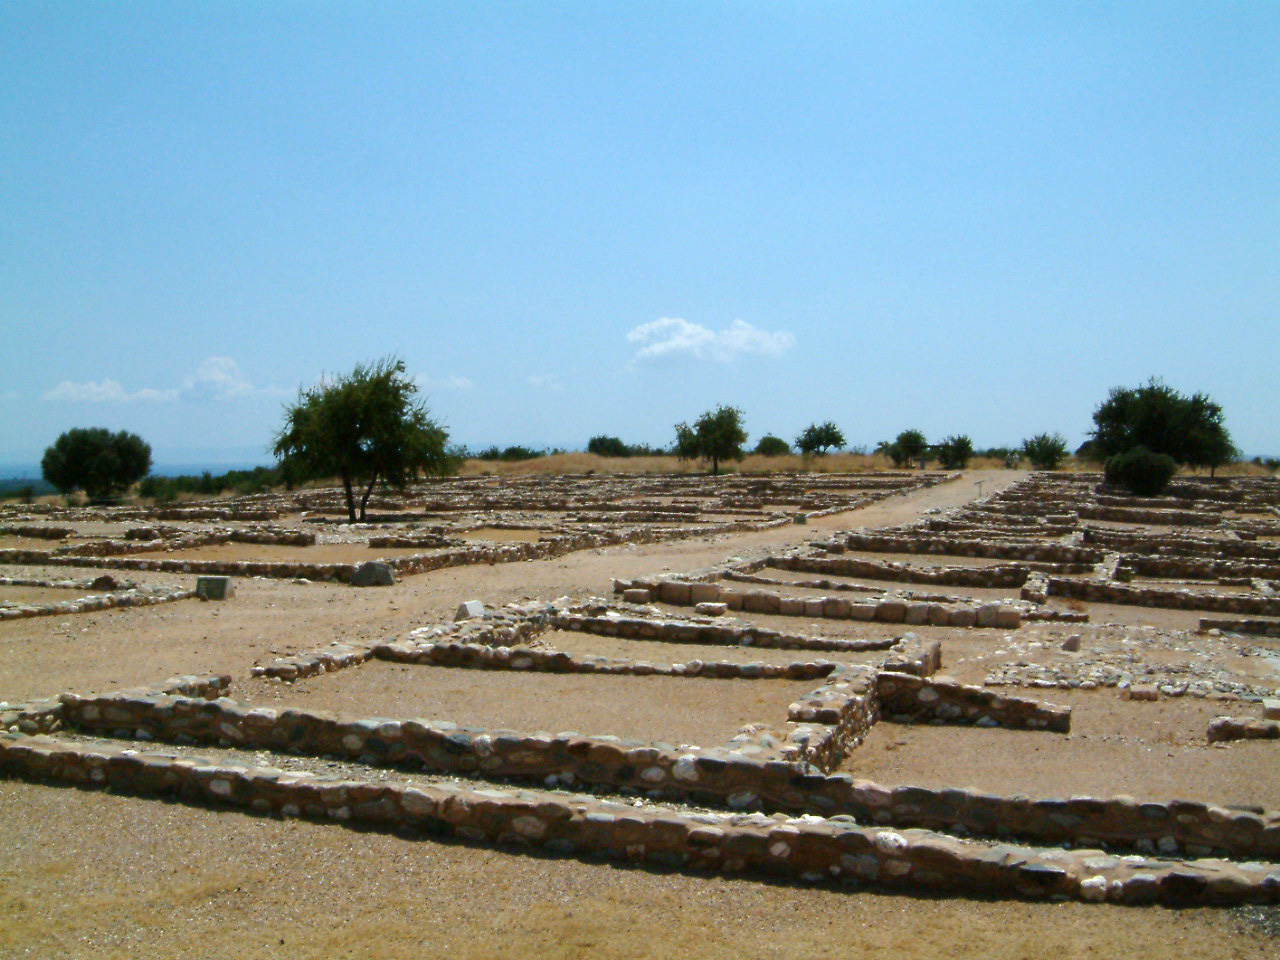 Olynthos North Hill in Greece; area excavated 1928–38 and now restored for visitors. Image credit: Lisa Nevett, Kelsey Museum of Archaeology